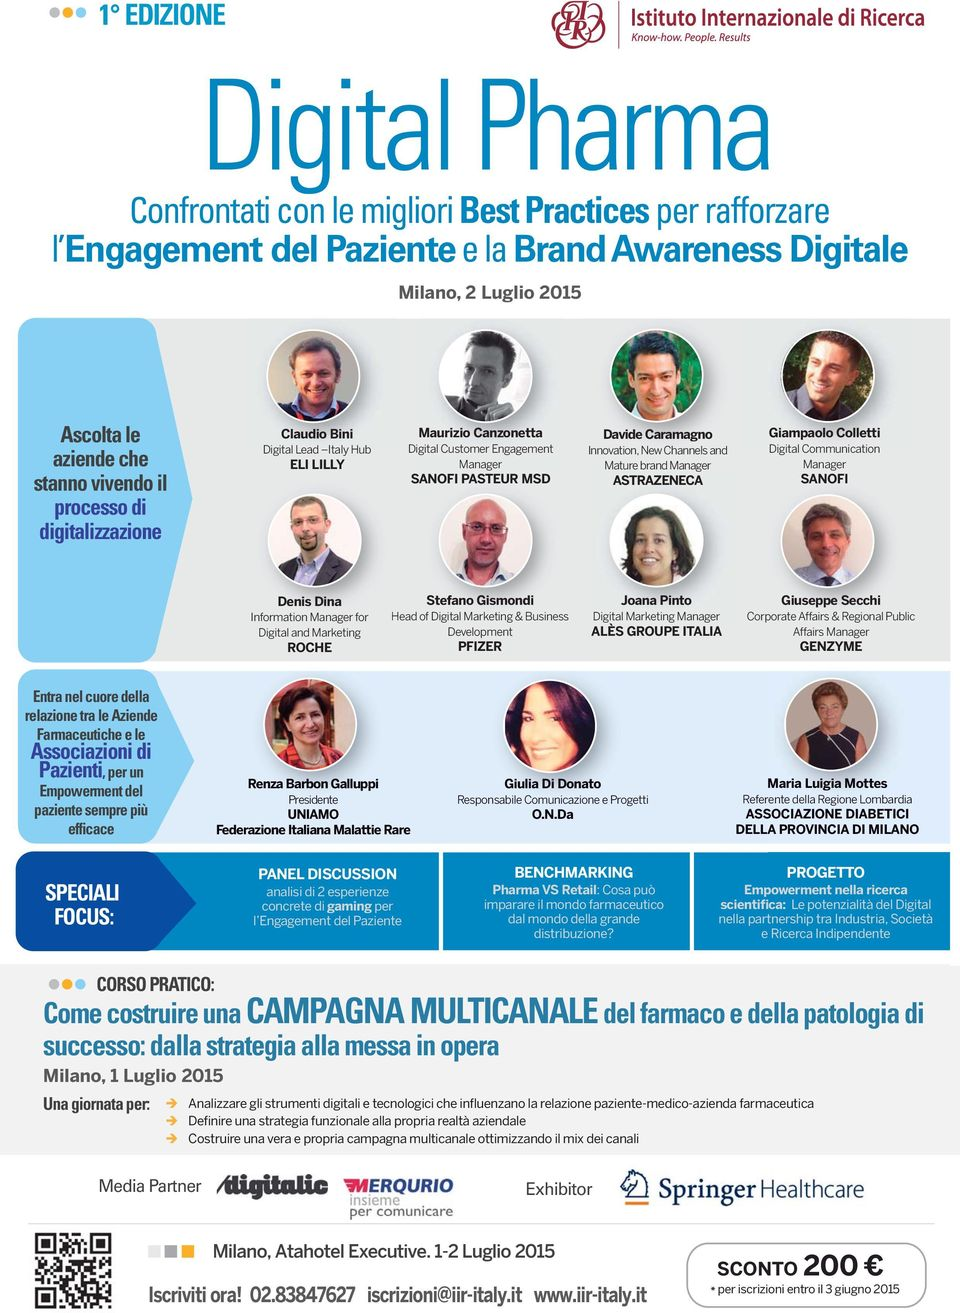 Mature brand Manager ASTRAZENECA Giampaolo Colletti Digital Communication Manager SANOFI Denis Dina Information Manager for Digital and Marketing ROCHE Stefano Gismondi Head of Digital Marketing &